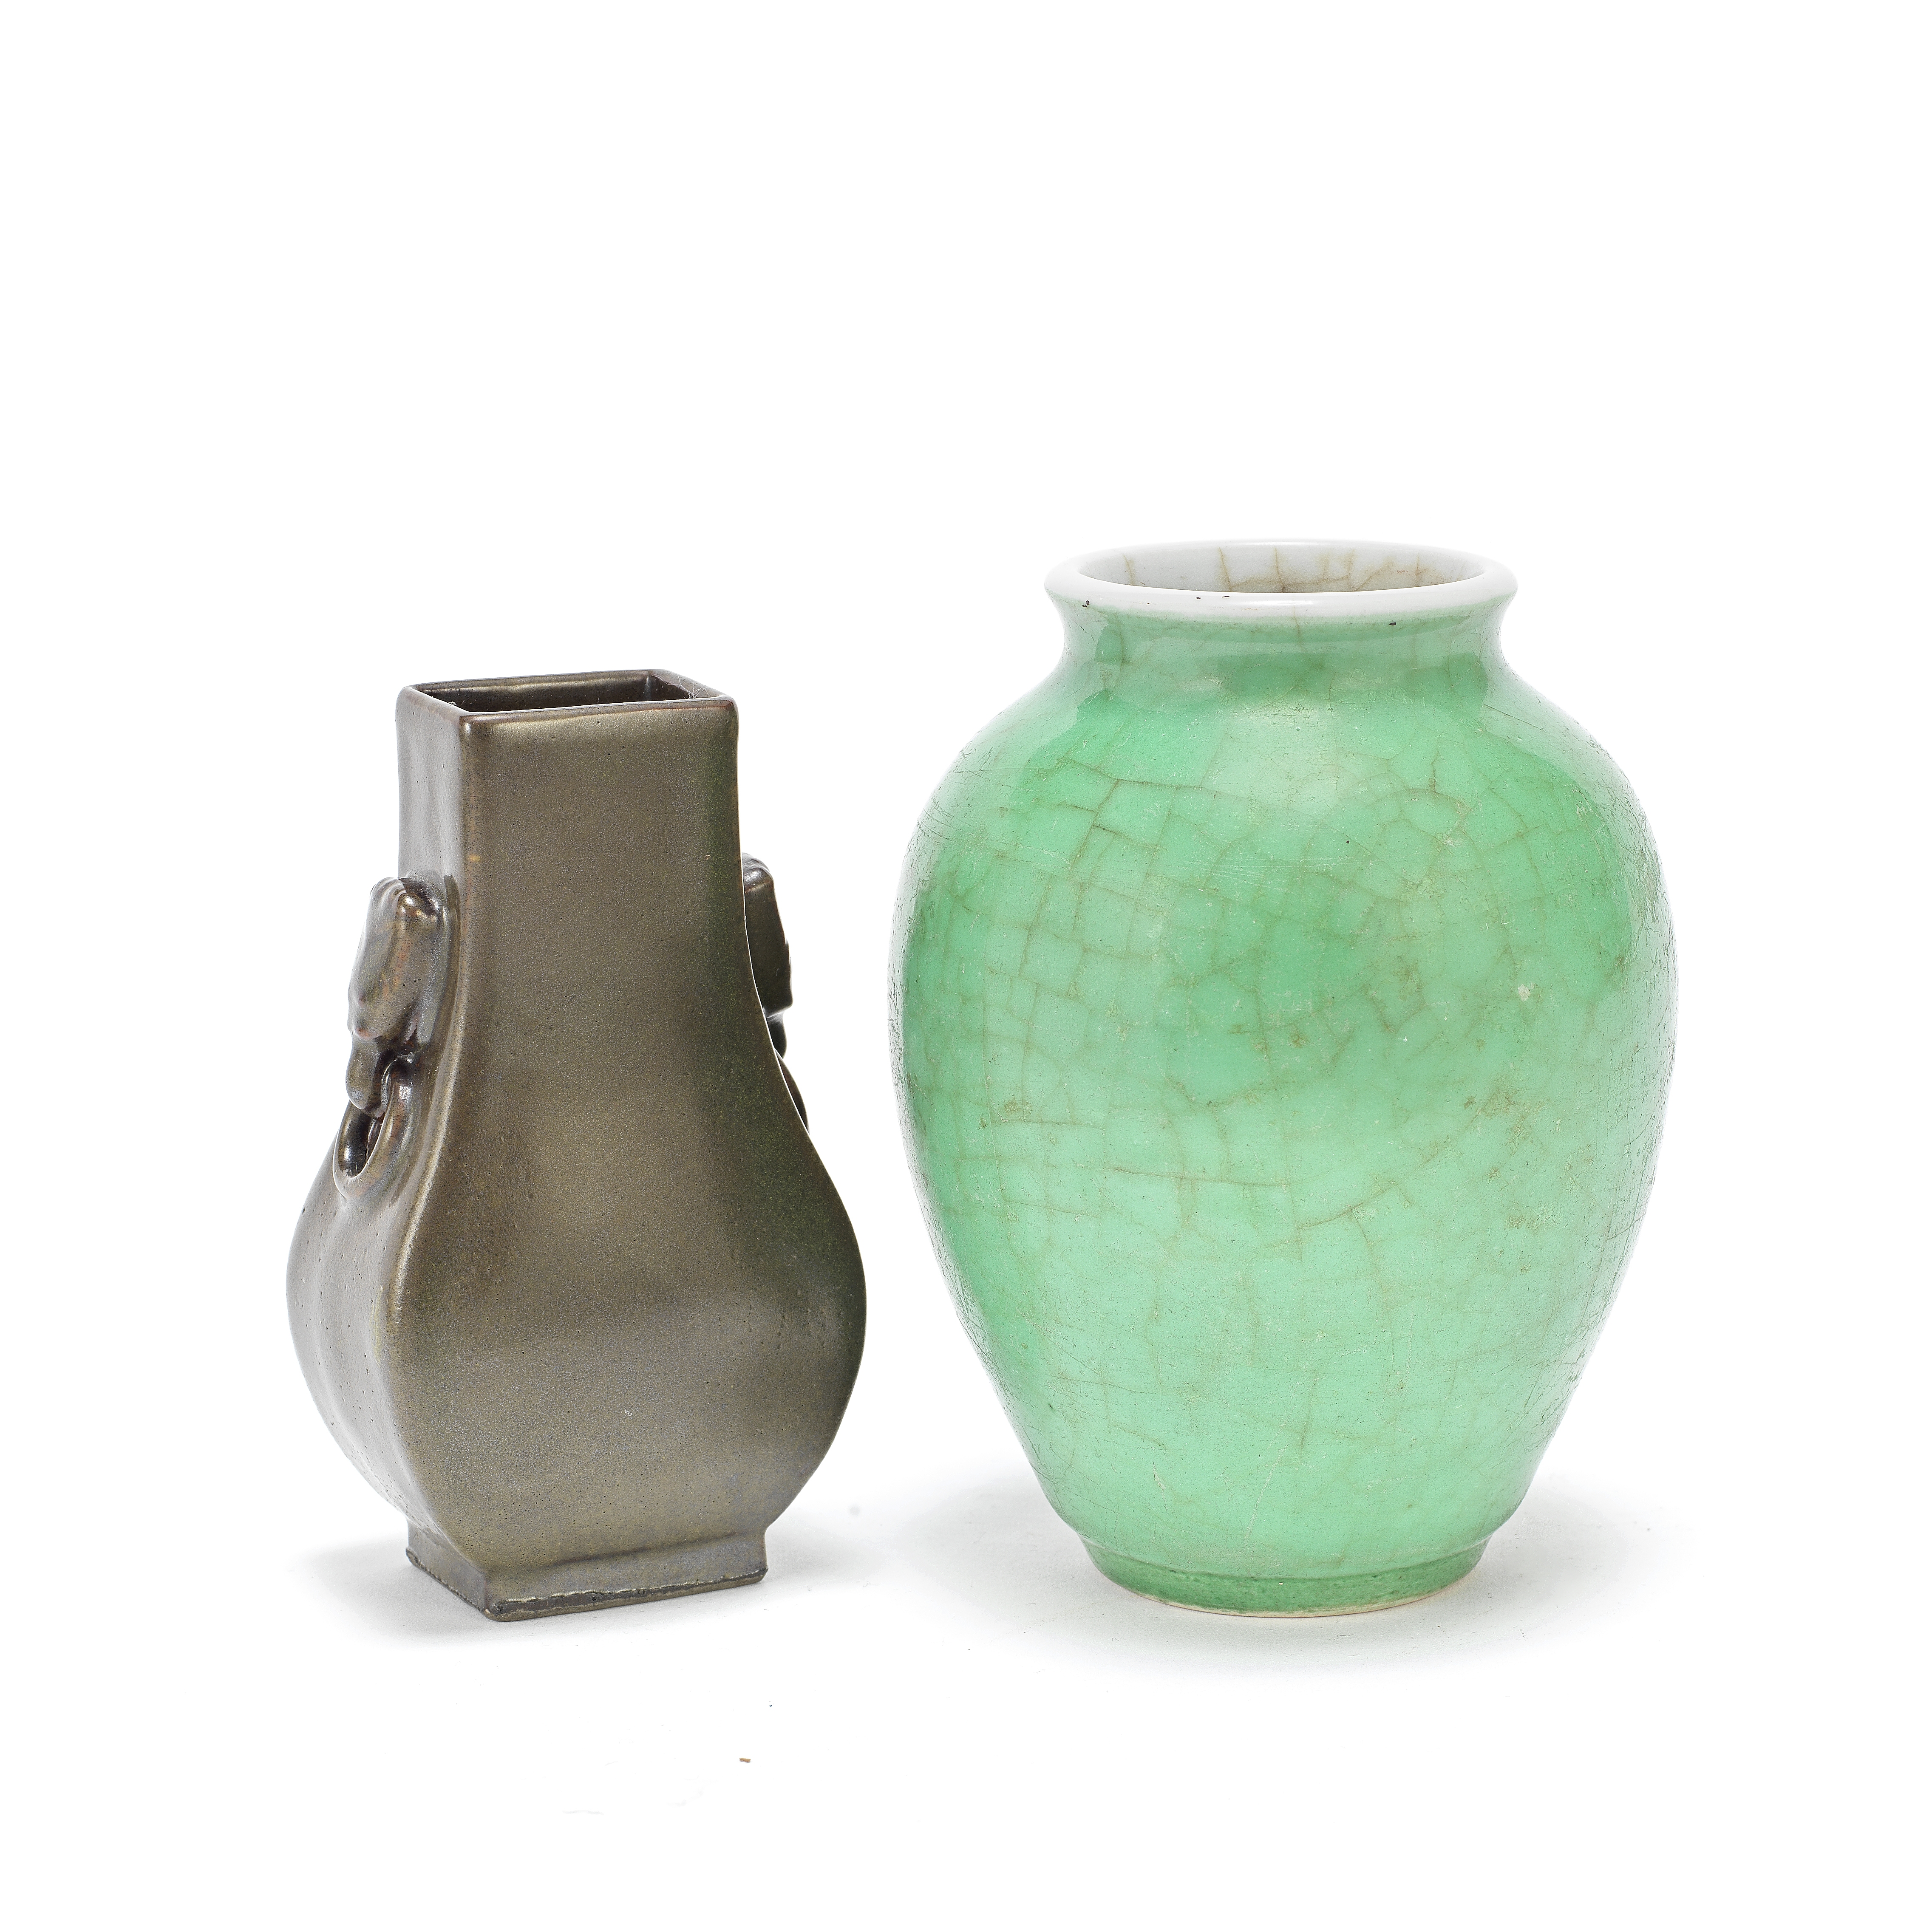 A SMALL APPLE-GREEN 'LANGYAO' JAR AND A TEADUST-GLAZED SQUARE PEAR-SHAPED VASE, HU Qing Dynasty, ...